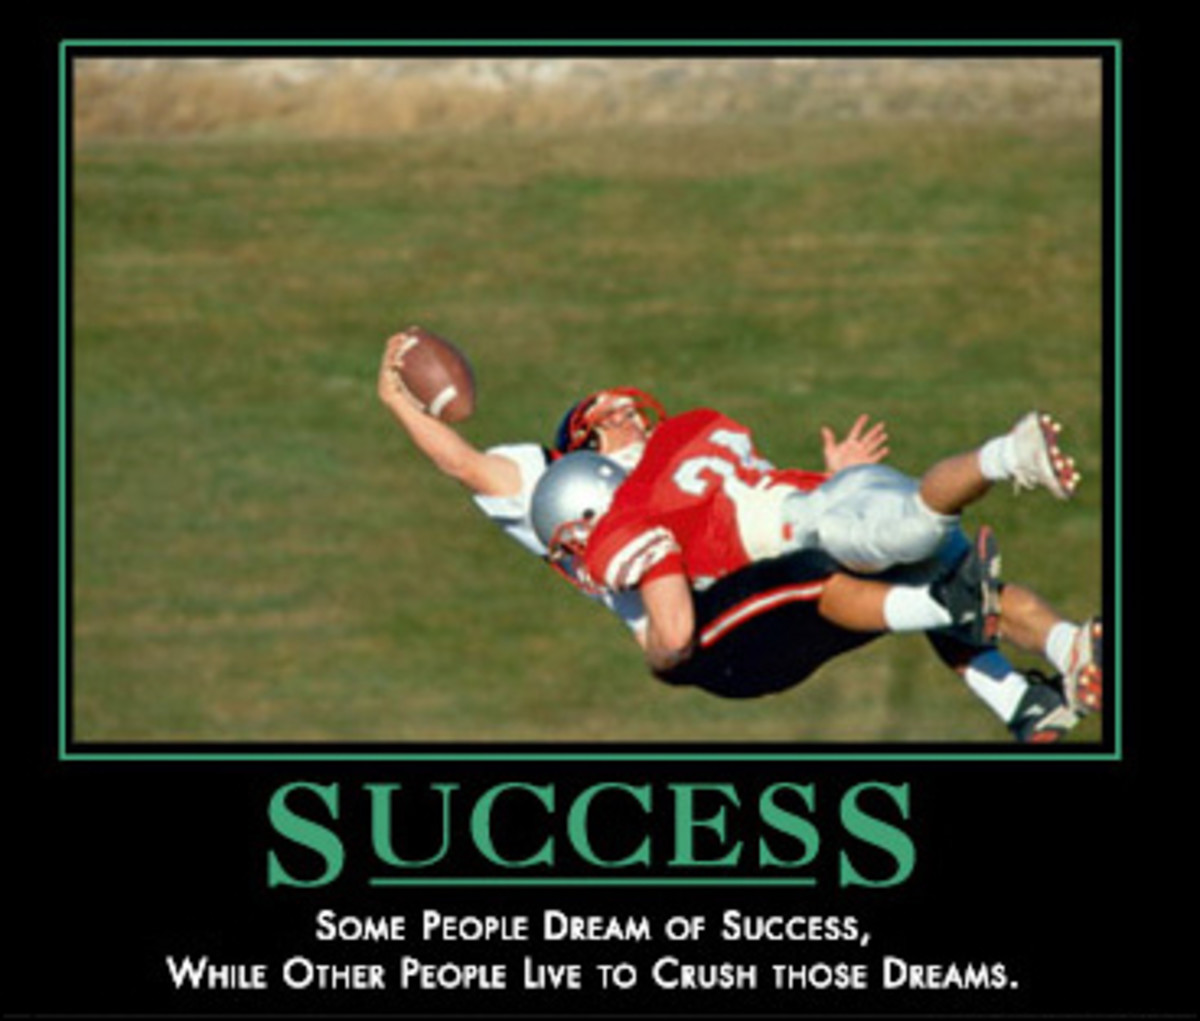 Success - some people dream of success while other people like to crush those dreams